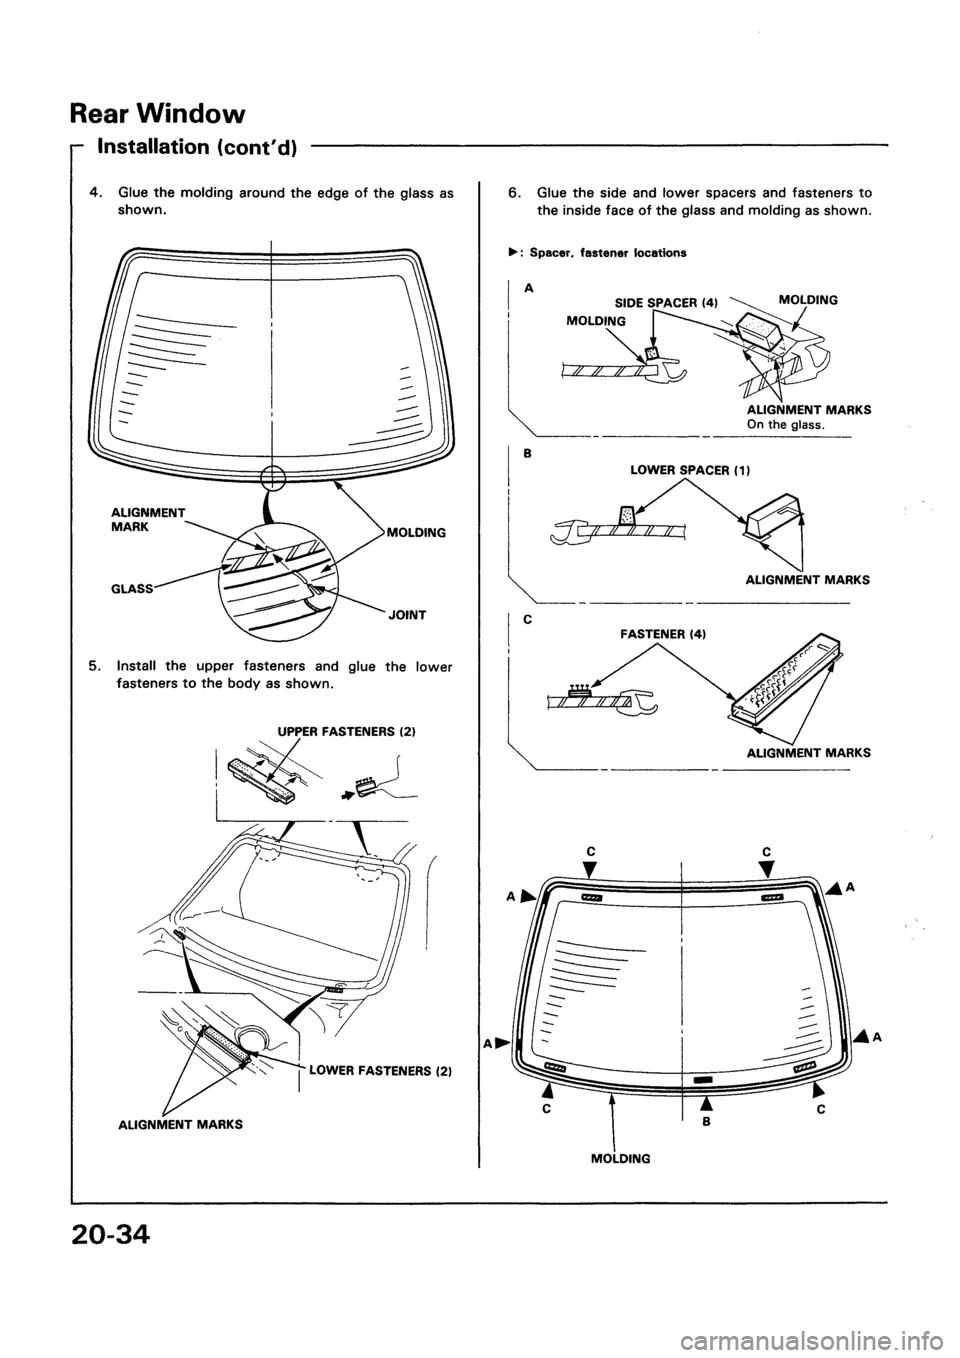 HONDA CIVIC 1994 5.G Workshop Manual (1258 Pages), Page